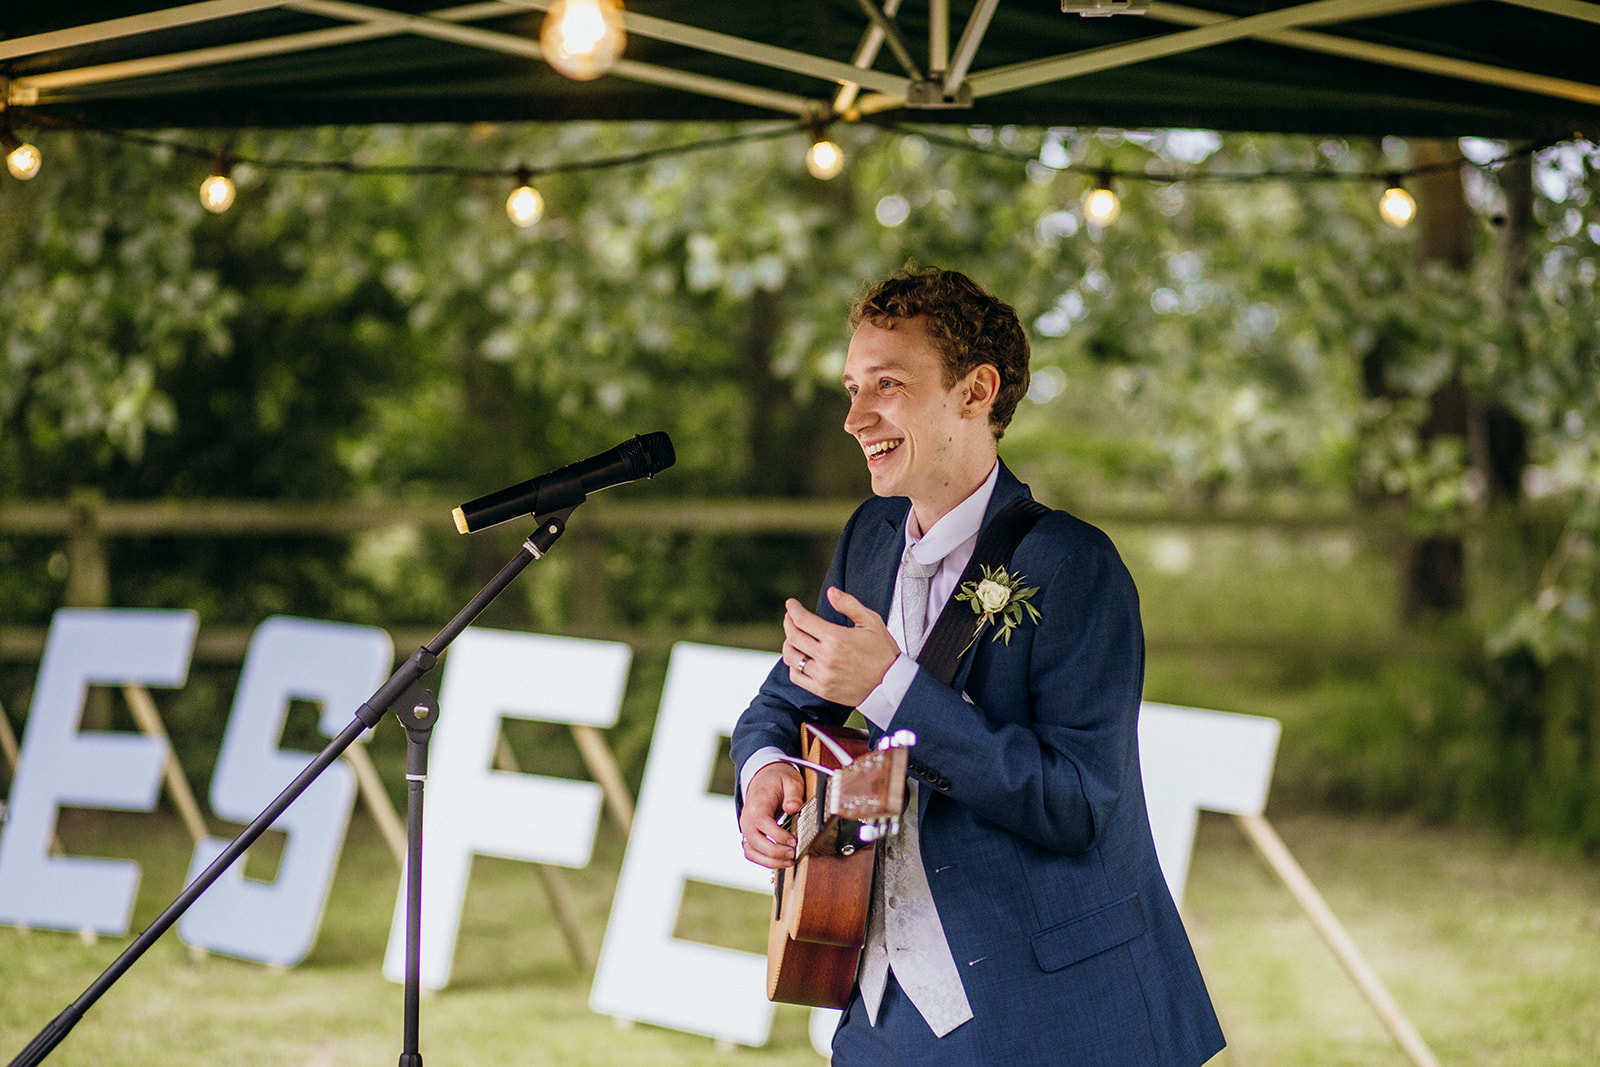 Groom playing guitar at wedding